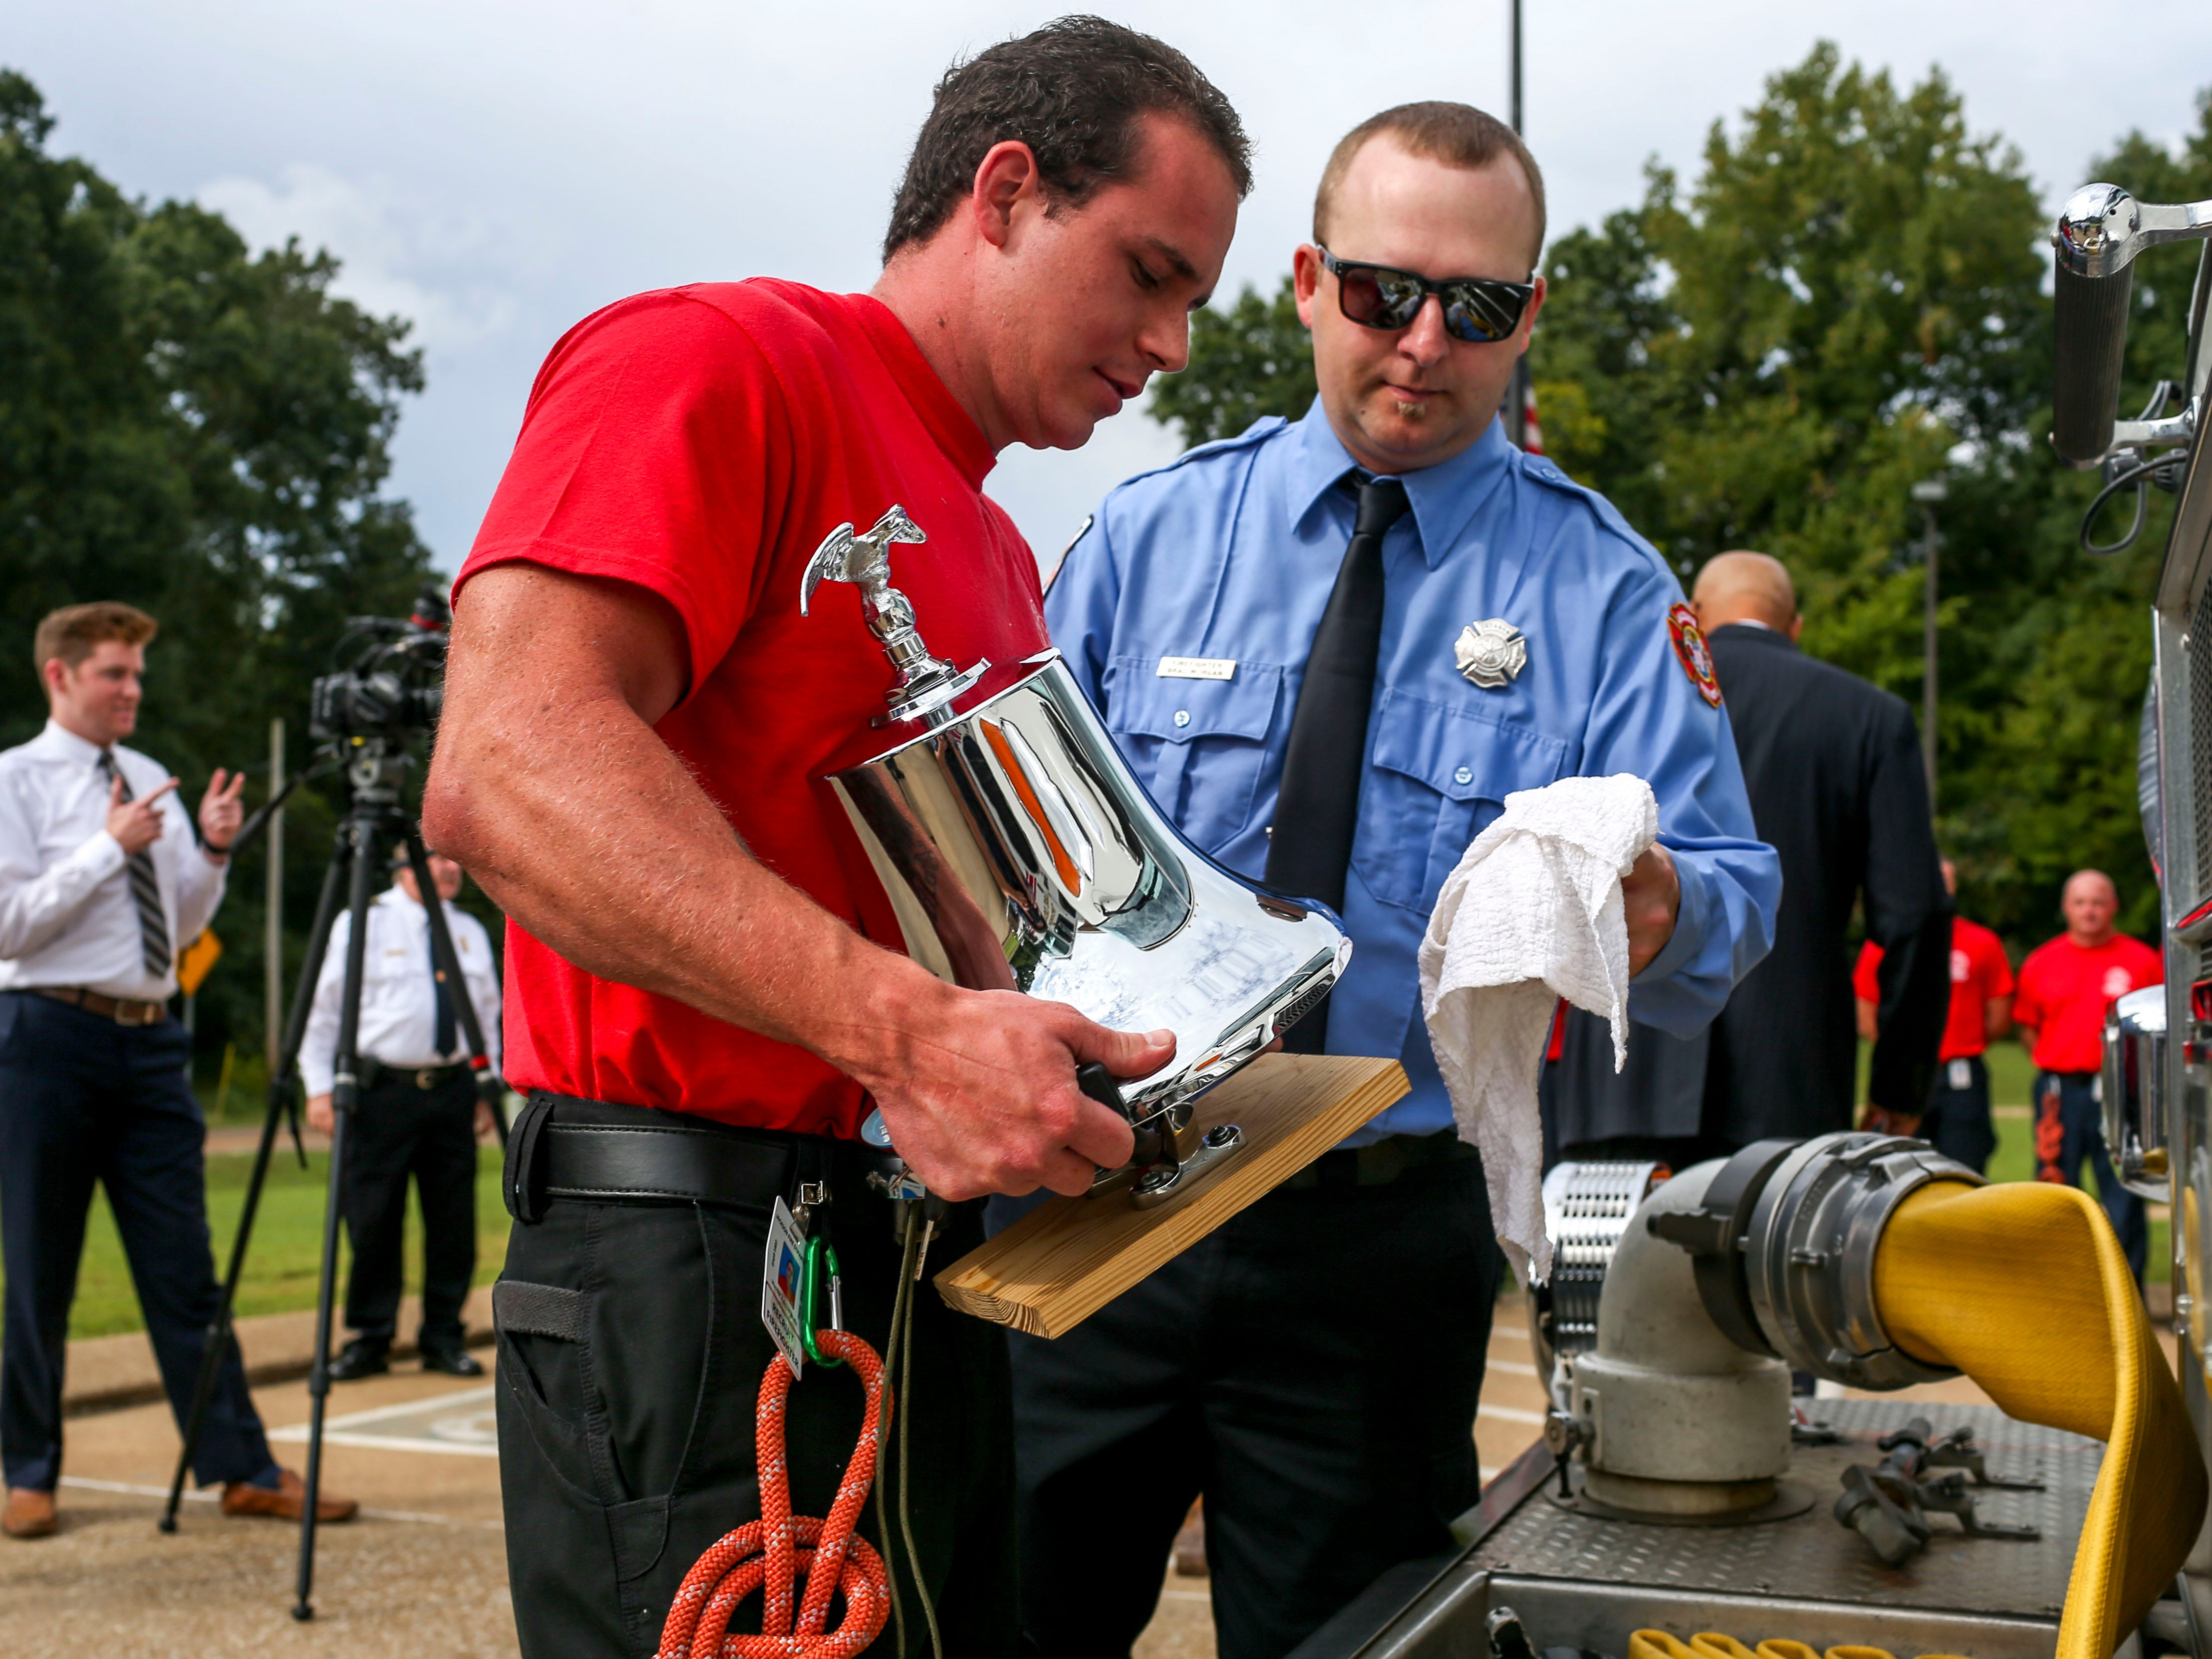 Brad Morgan, right, assists new recruit Hunter Wells, left, put away the ceremonial bell after an event honoring the victims of the 9/11 attacks at Fire Station 3 in Jackson, Tenn., on Tuesday, Sept. 11, 2018.